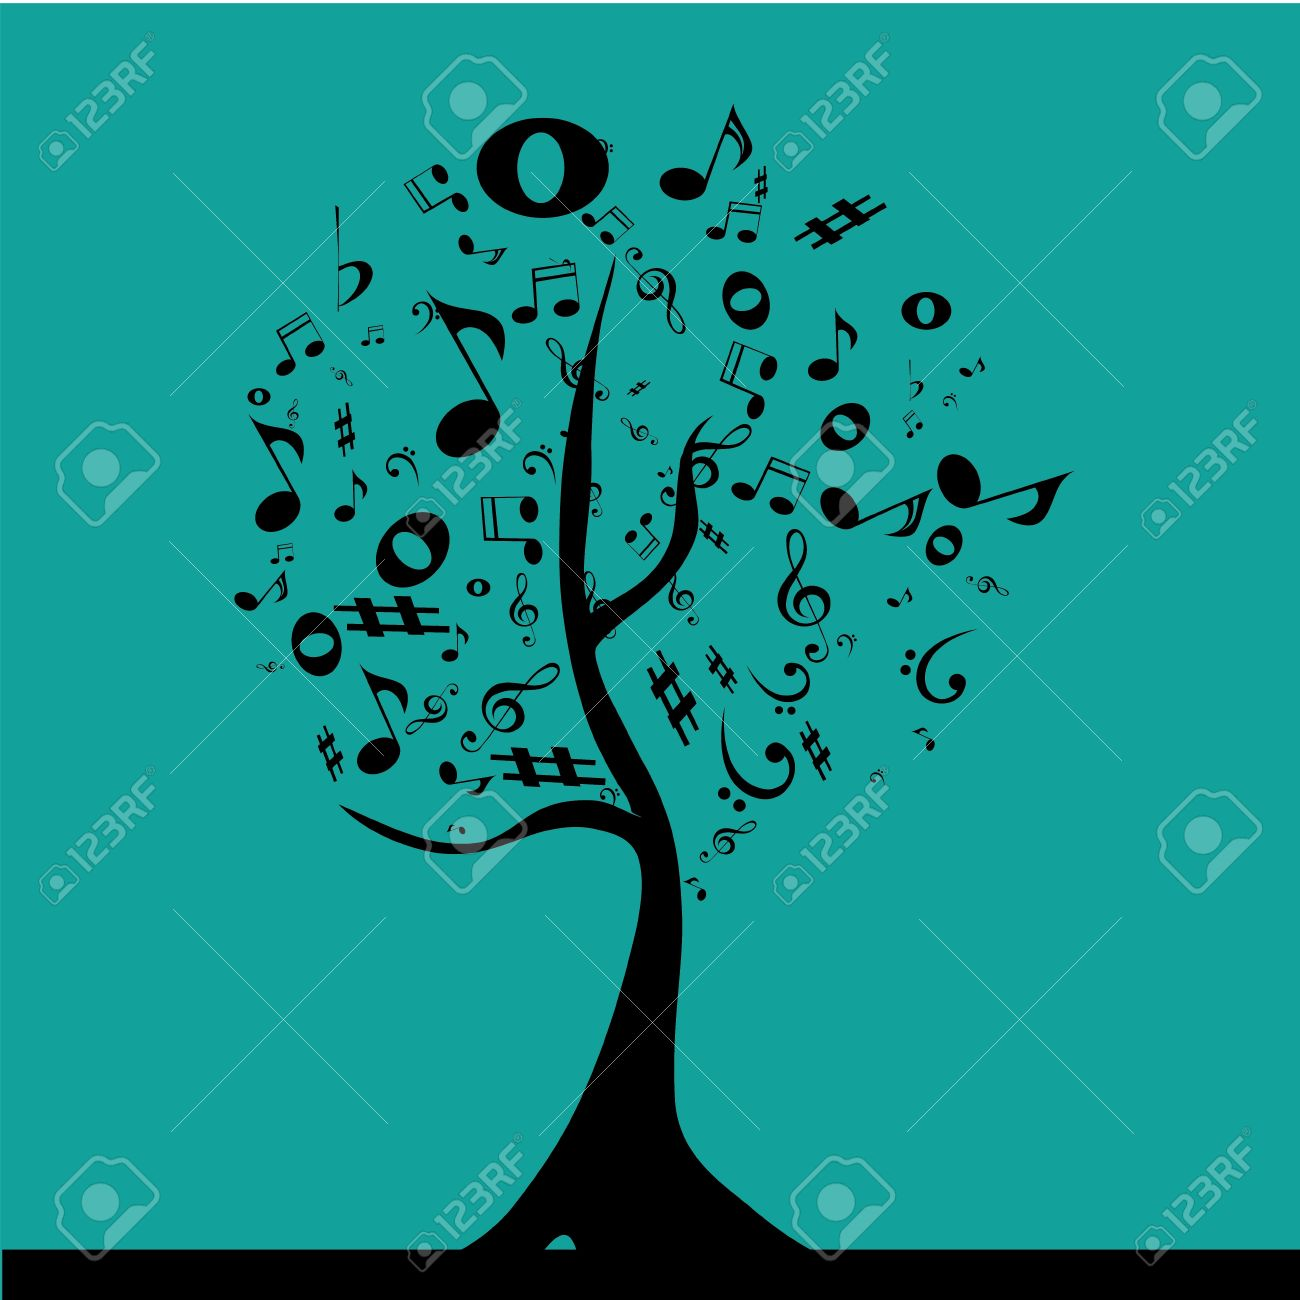 a black tree composed by black musical notation in a blue blackground - 21523545